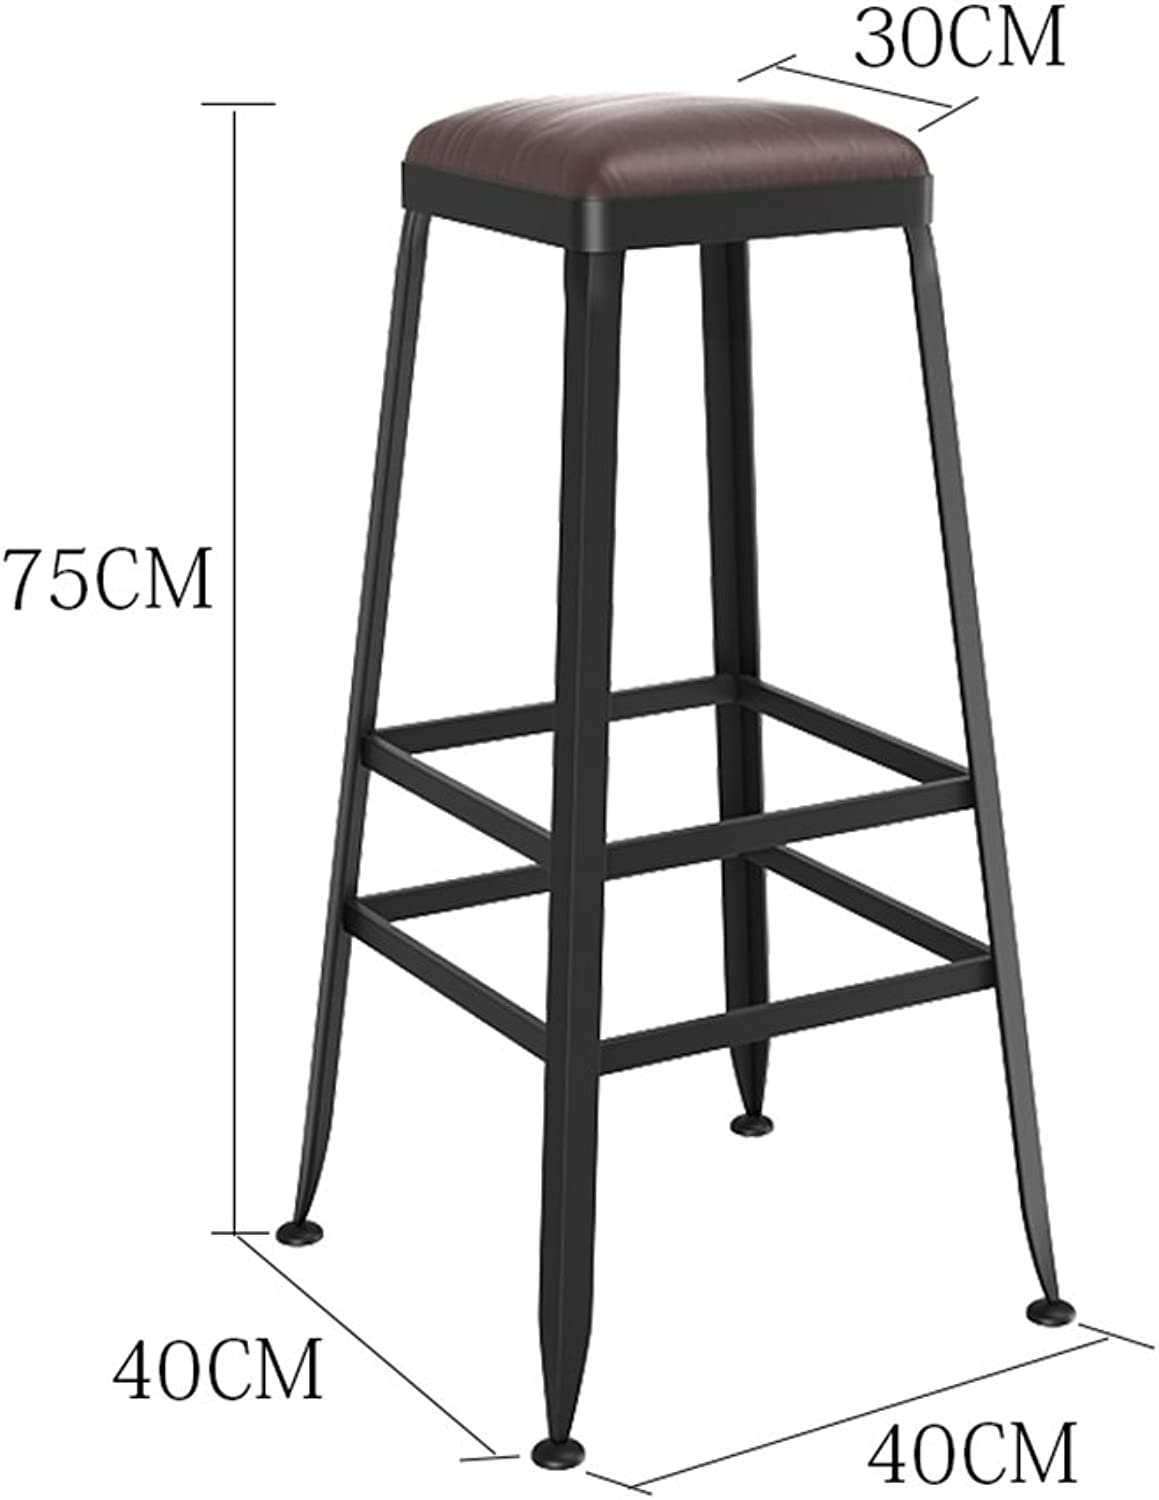 DQMS Bar Stool, Wrought Iron Chair PU Leather Brown High Stool Front Desk Without Backrest (Size   Height 75cm)